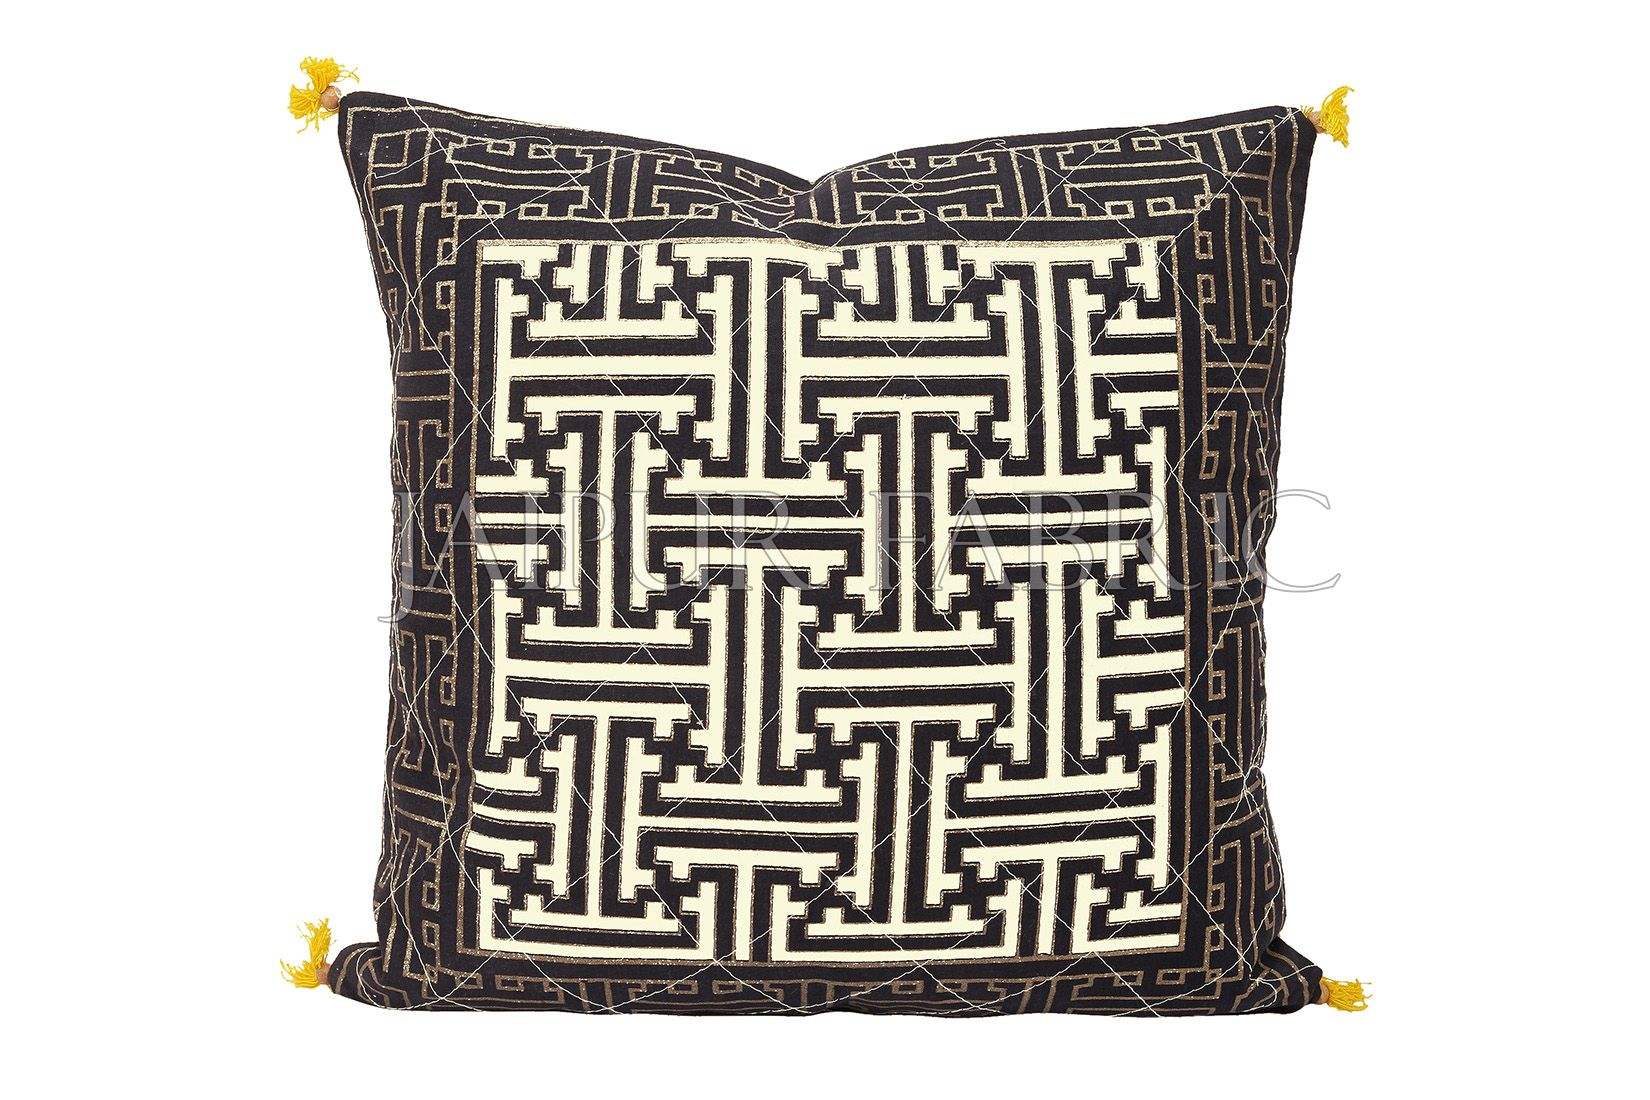 Cream Base Black Border Maze Design Cotton Cushion Cover